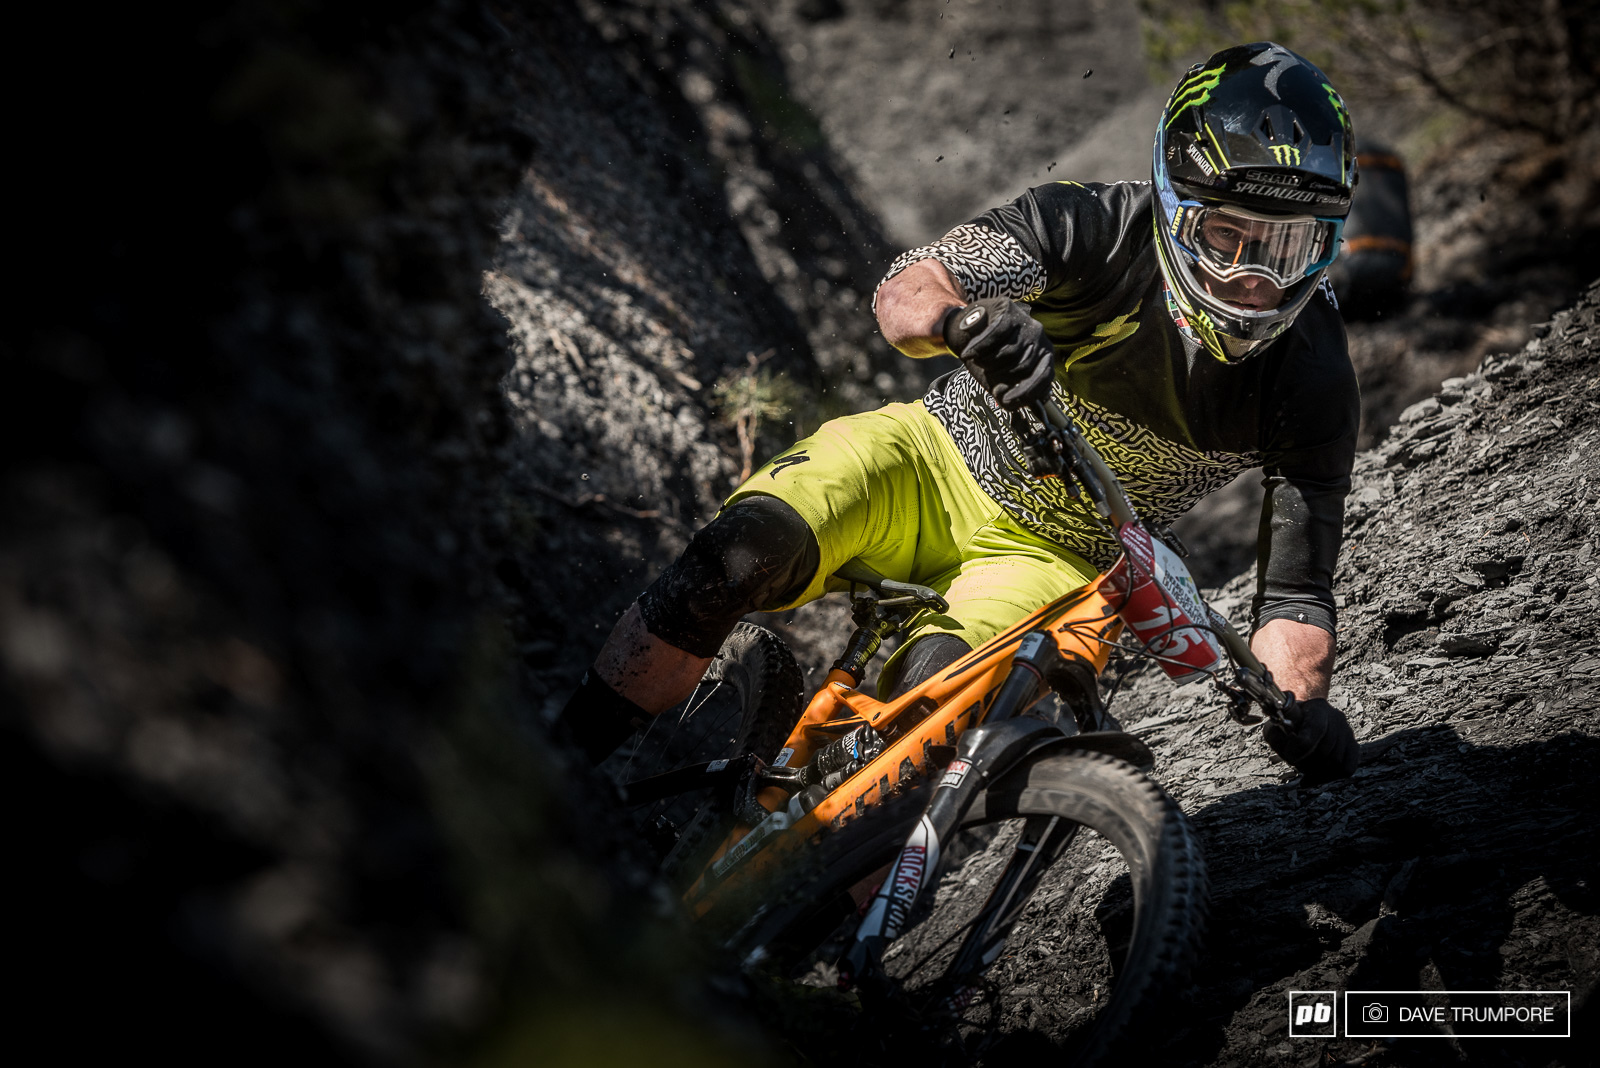 Jared Graves had a massive crash on stage 1 and struggled to regain his form through the rest of the day.